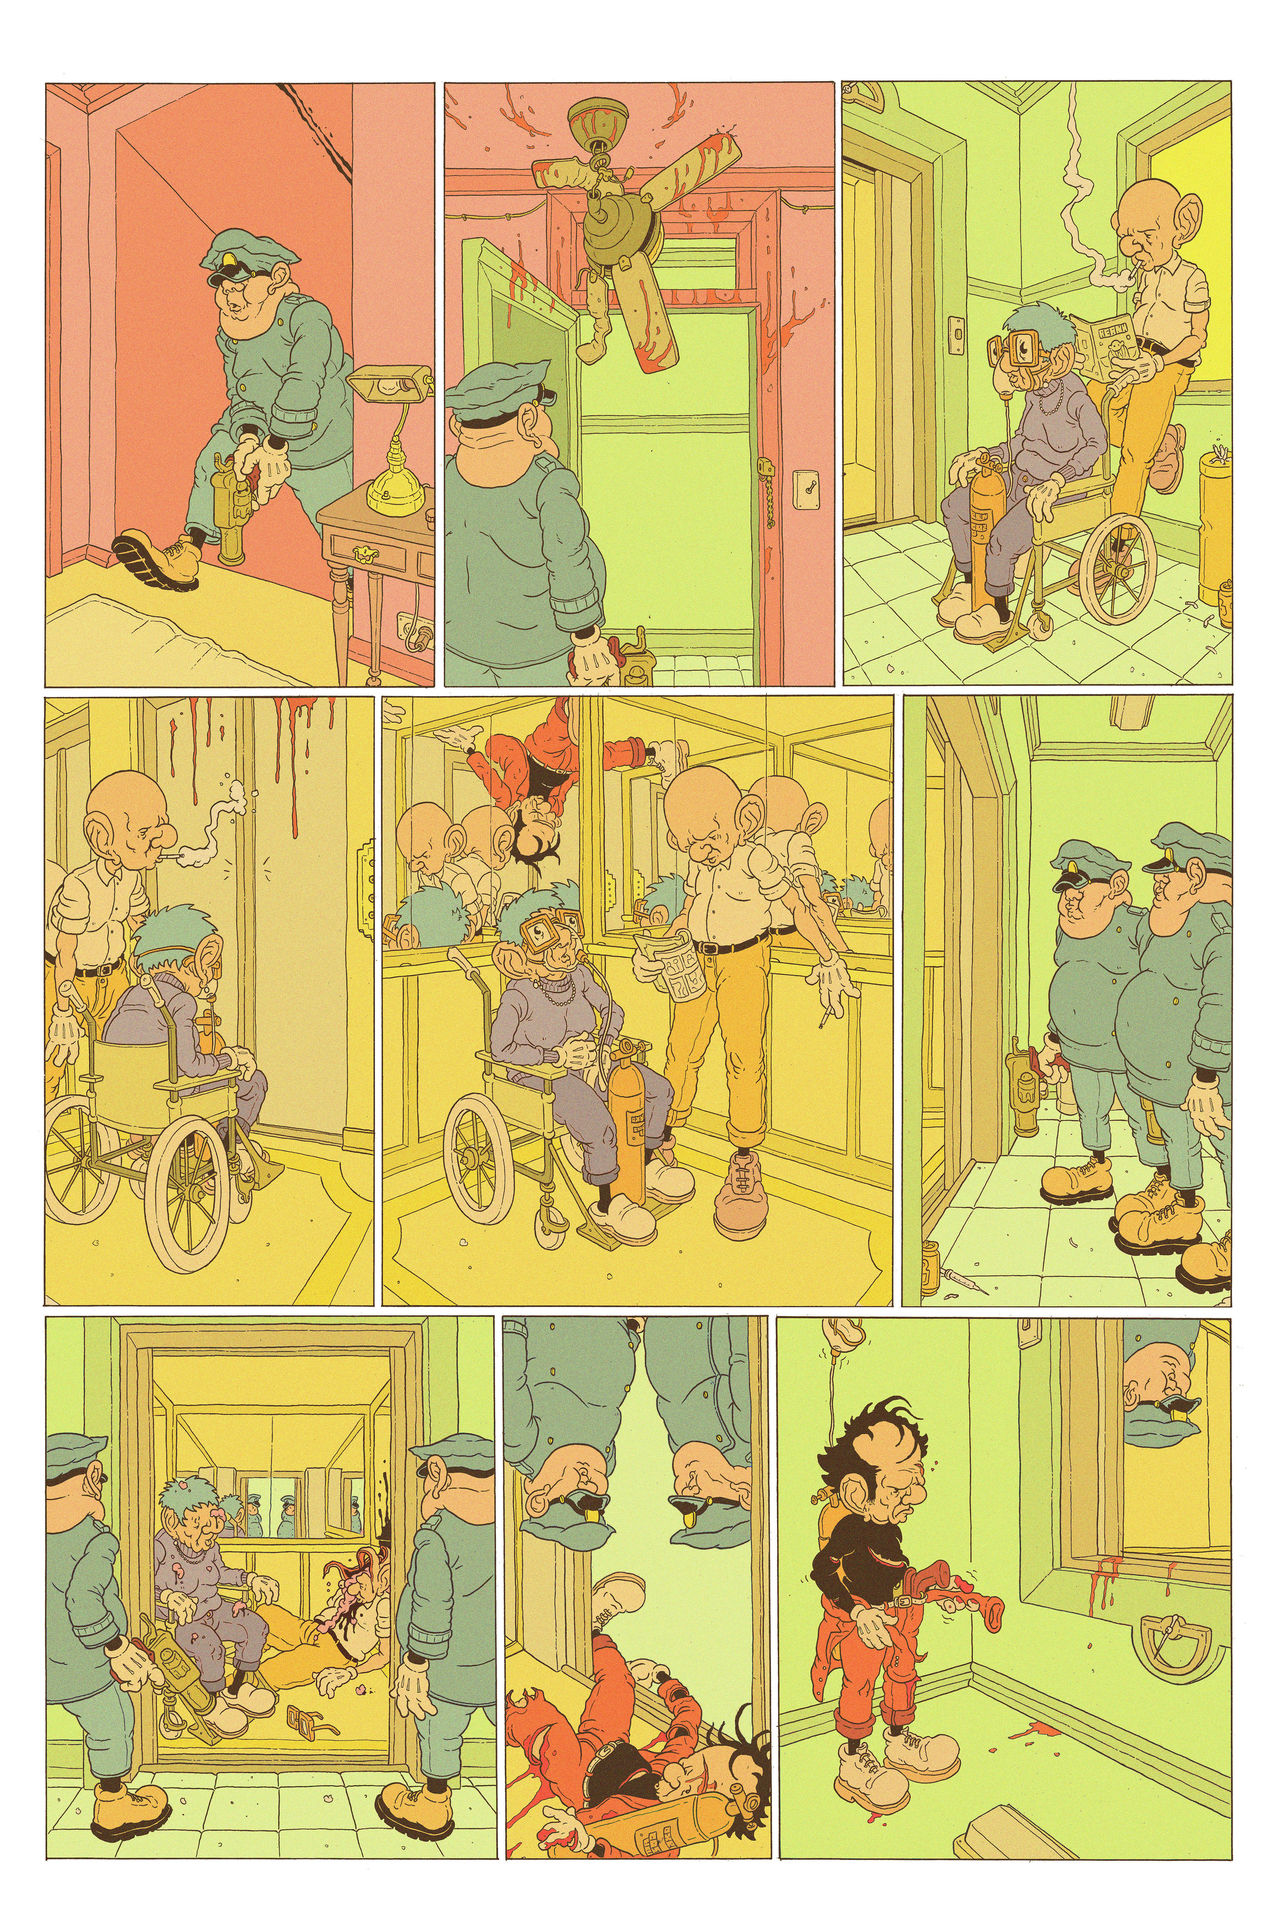 A multi-panelled comic depicting a robber in a red suit and yellow beanie running away from police. After the robber loses his centre of gravity, he can be seen hurtling towards a ceiling fan. The collision leaves him injured. Despite being hurt, the robber enters the building elevator where he floats on the ceiling above two by-standers. Police wait as the lift opens on another floor, mistaking the by-standers for the robber they shot as the doors open. The robber remains upside down, one step ahead of the Police, as they stand in front of the elevator doors oblivious to the fact that the robber has just passed over their heads